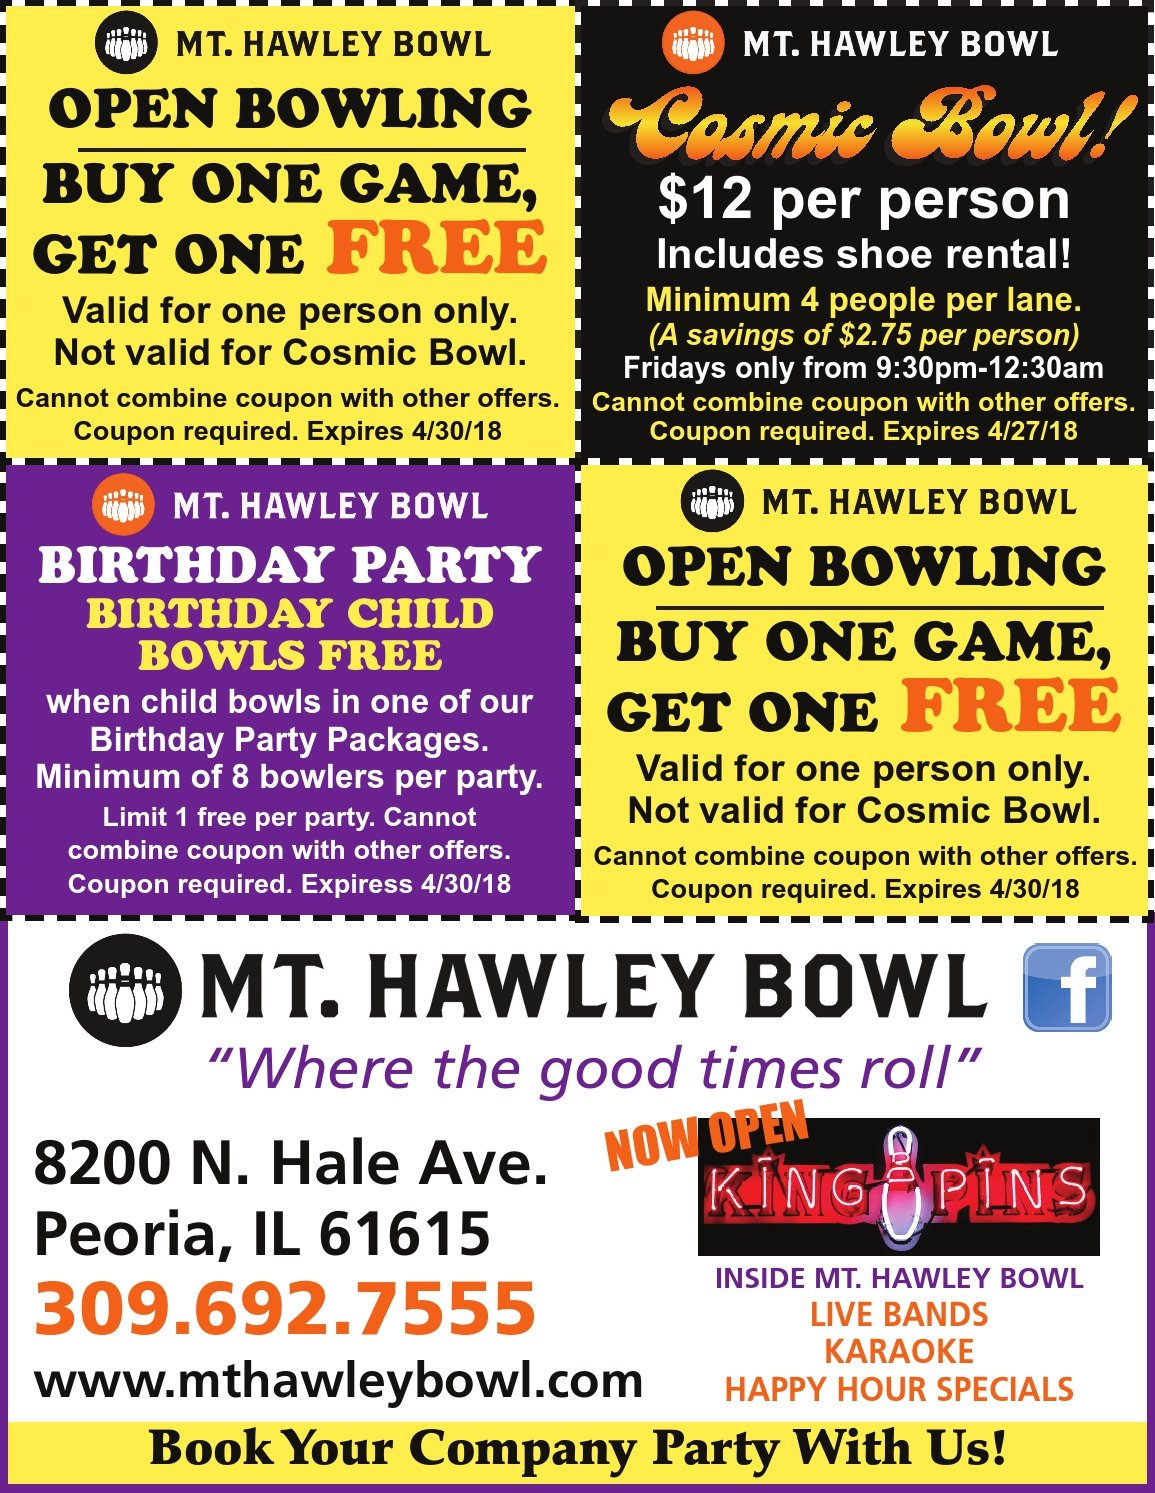 Mt Hawley Bowl castle golf cosmic bowling coupons Peoria, IL